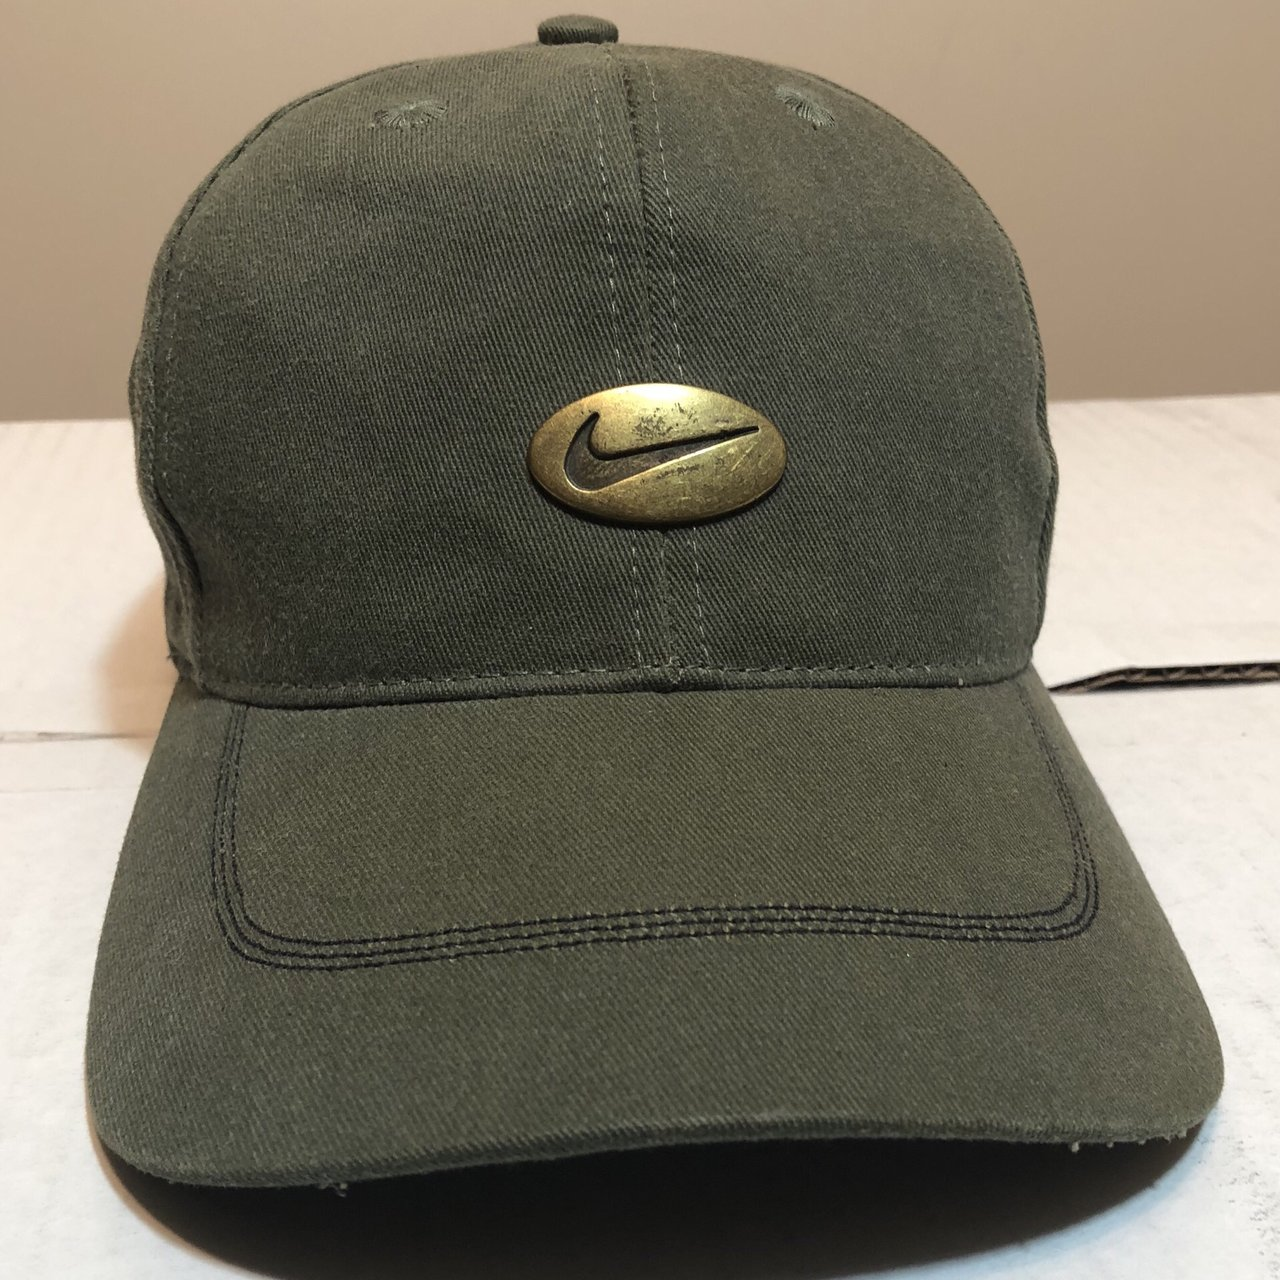 051e85ed39 Vintage 90s Nike dad hat olive green Condition  super good - Depop